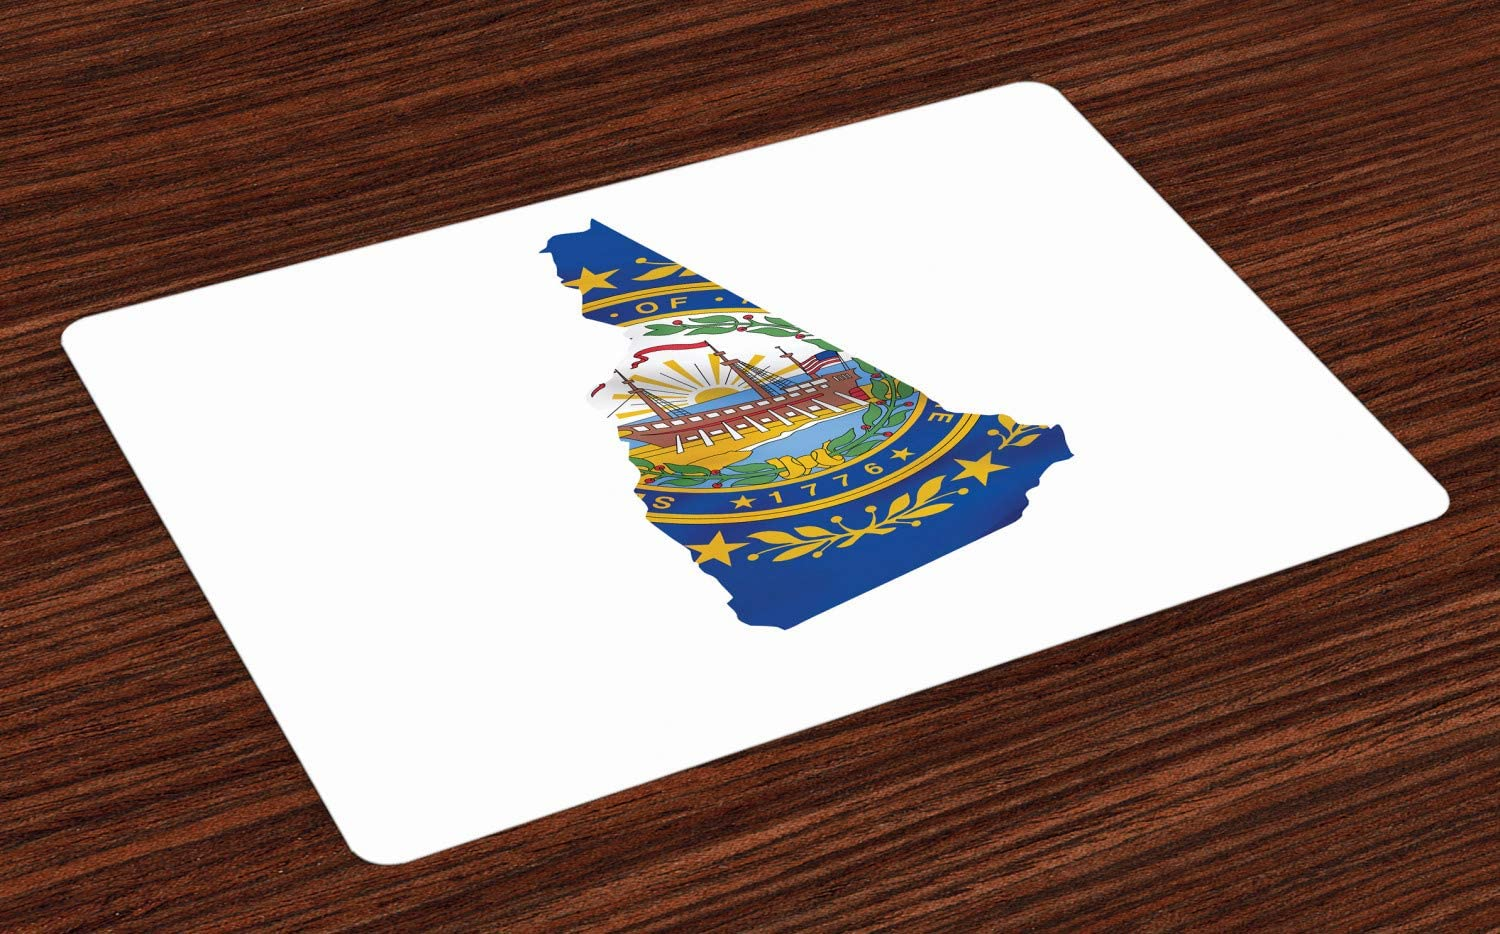 Lunarable New Hampshire Place Mats Set of 4, Granite State Flag as Map 9 Stars and Seal, Washable Fabric Placemats for Dining Room Kitchen Table Decor, Cobalt Blue Earth Yellow Multicolor